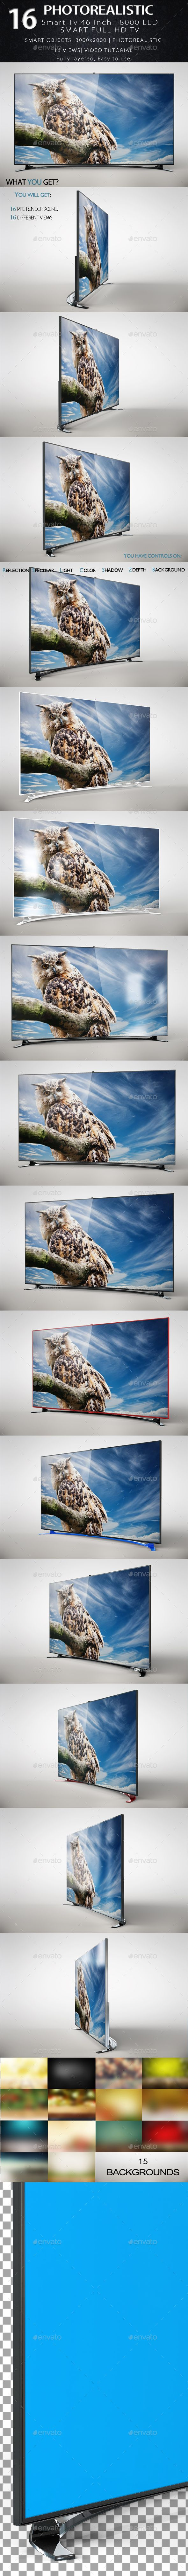 Smart Tv 46 Inch F8000 LED Full HD — Photoshop PSD #s7 #website • Available here → https://graphicriver.net/item/smart-tv-46-inch-f8000-led-full-hd/17973068?ref=pxcr